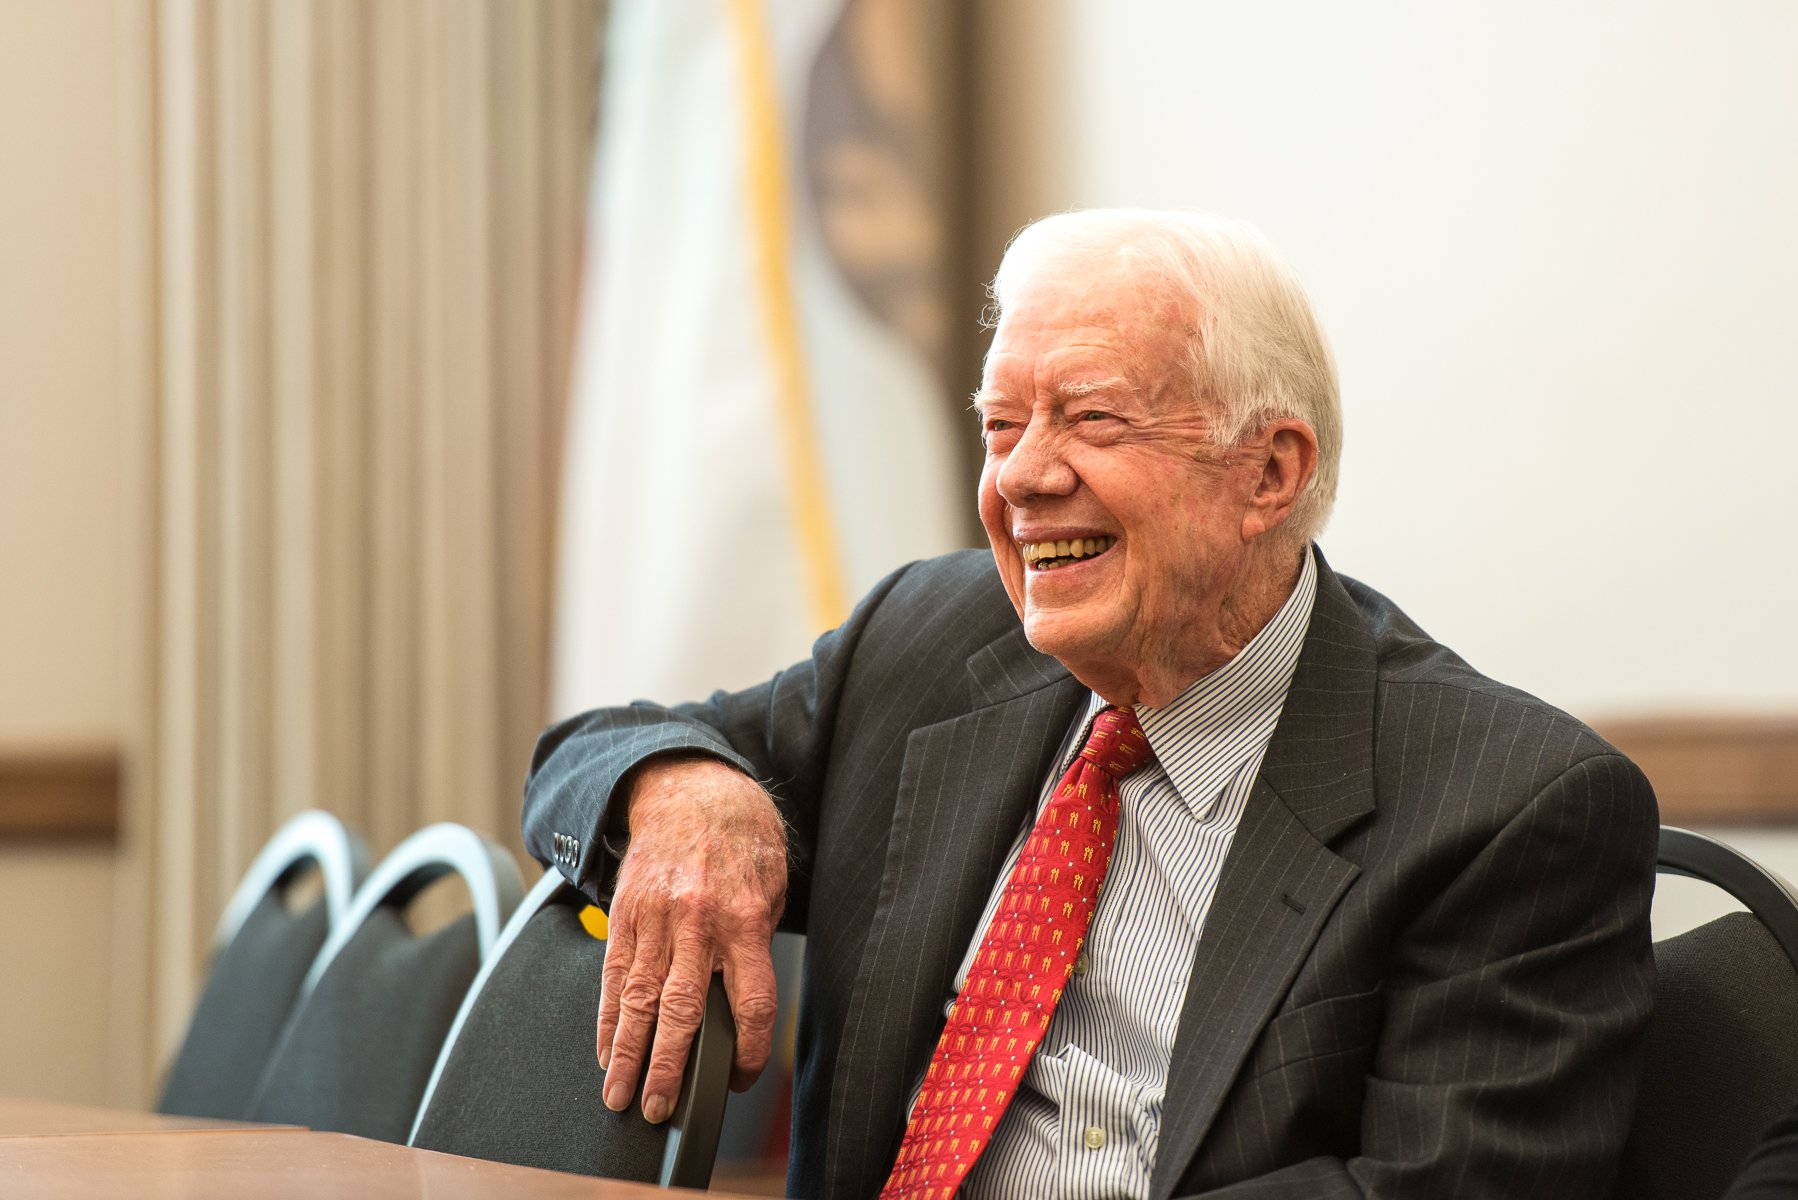 jimmy-carter-commonwealth-club-flickr.jpg